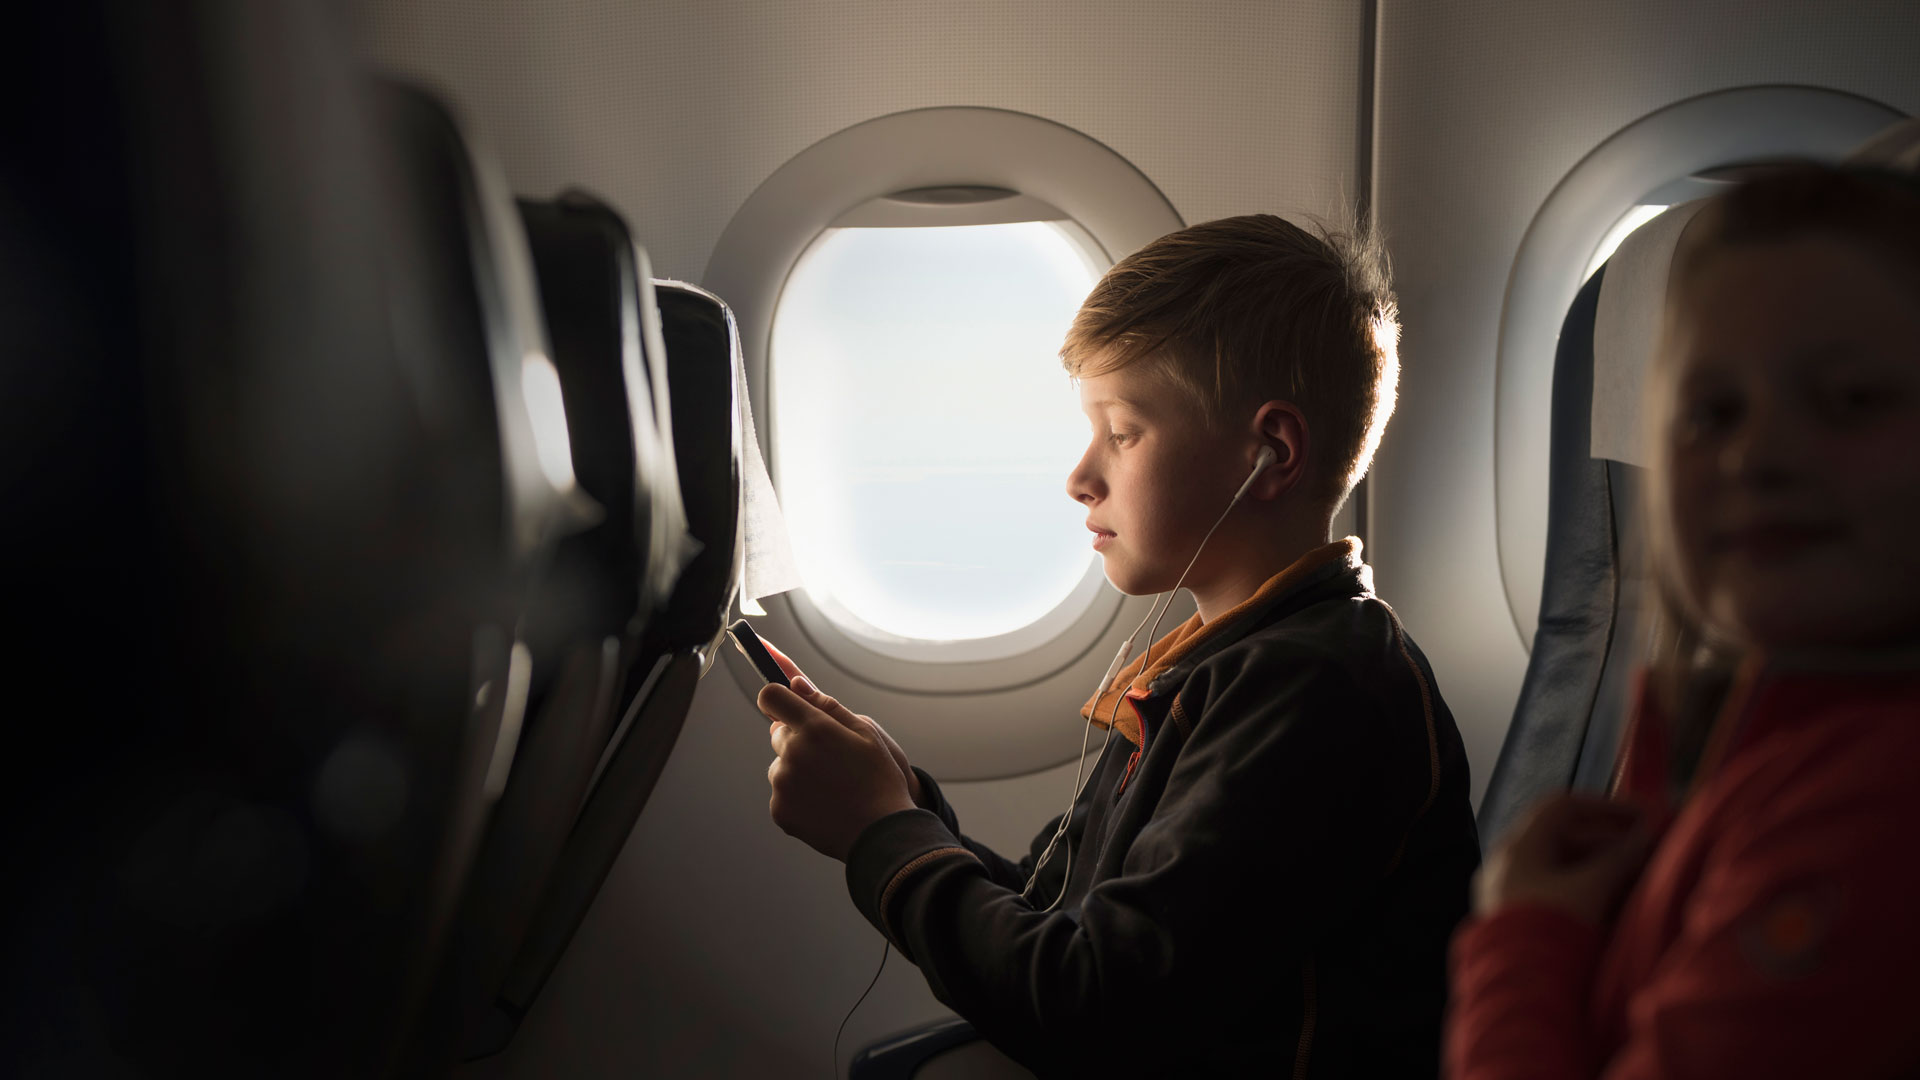 Boy using headphones connected to mobile device while seated on an airplane.